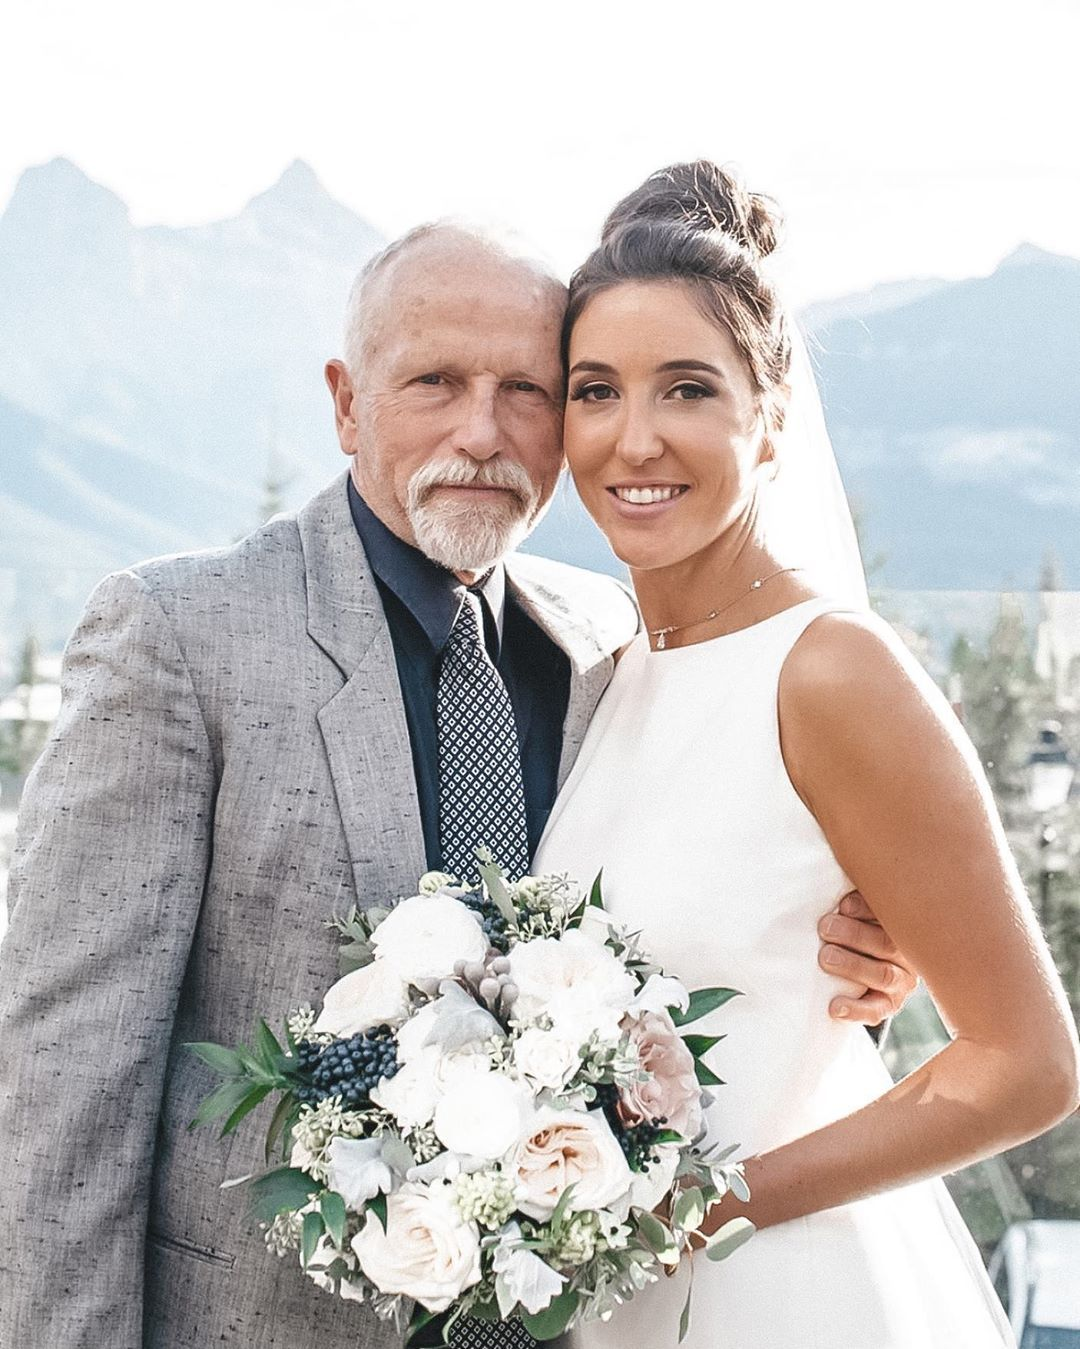 Happy Father's Day! Your strength has really rubbed off one me ❤️ The older I get, the more I realize I am just like you - and for that I am thankful! . . . . #fathersfay #dad #june21 #oldman #fathersdaughter #daughter #fathersday #girldad #fatherfigure #family #sunday #blogger #prouddaughter #dadsday #weddingday #weddingphoto #fashion #weddingdress #choker #weddingflowers #highnecklinedress #openbackdress #weddinggown